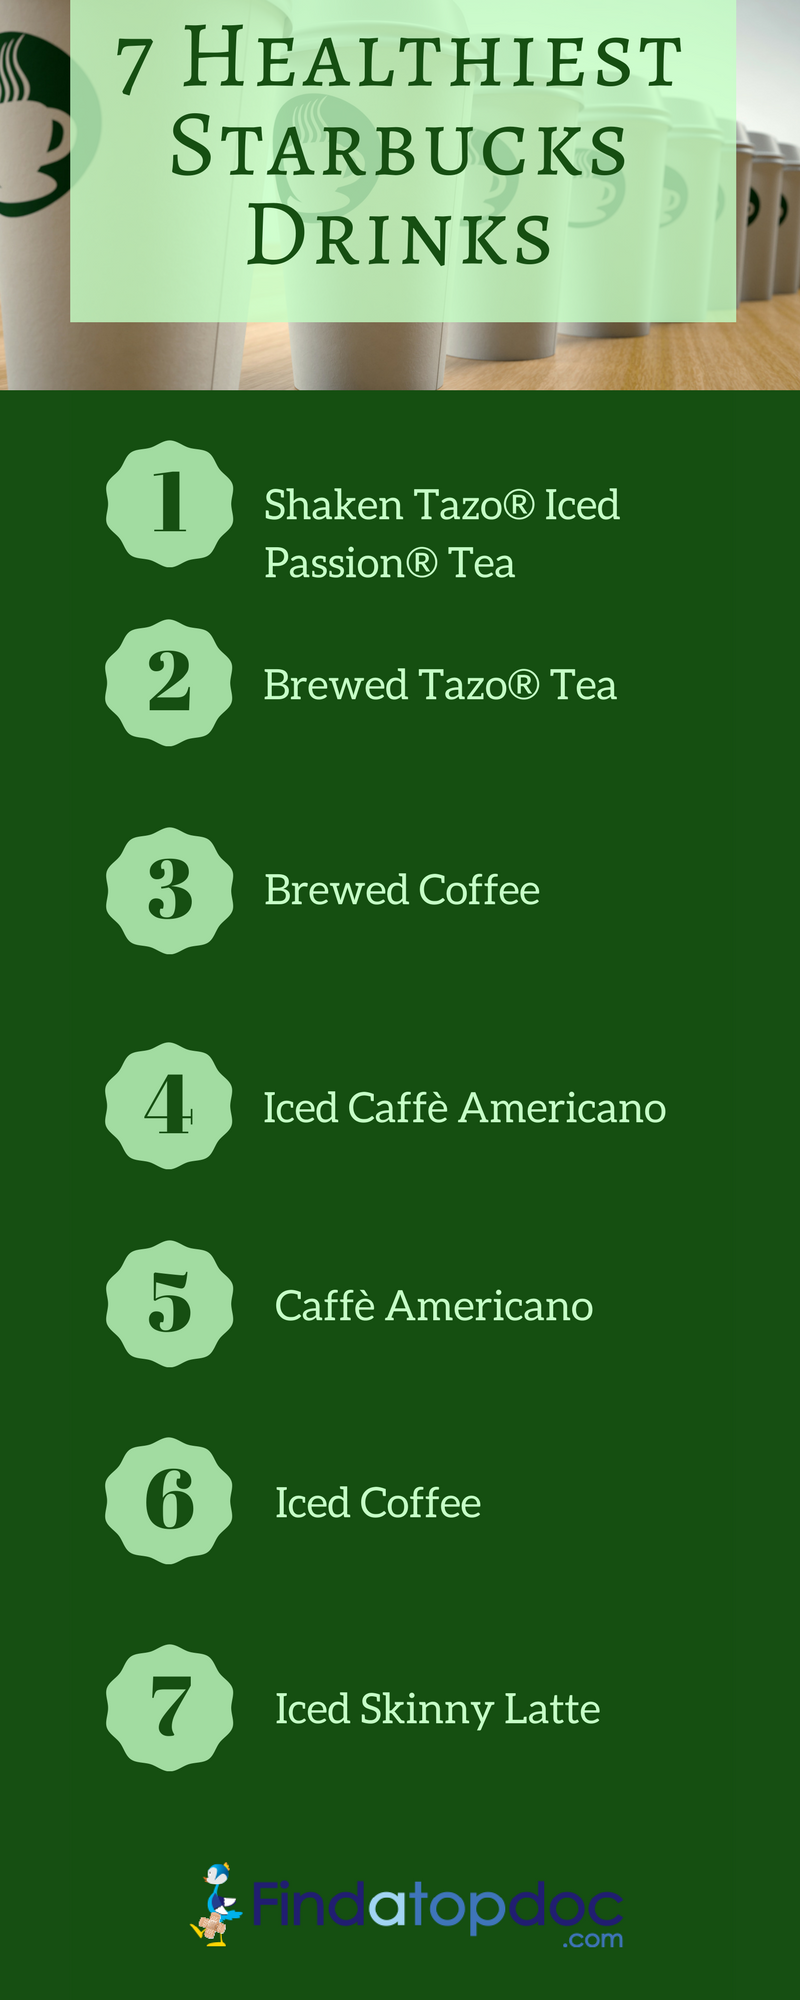 Starbucks | Menu items and Nutrition Facts.